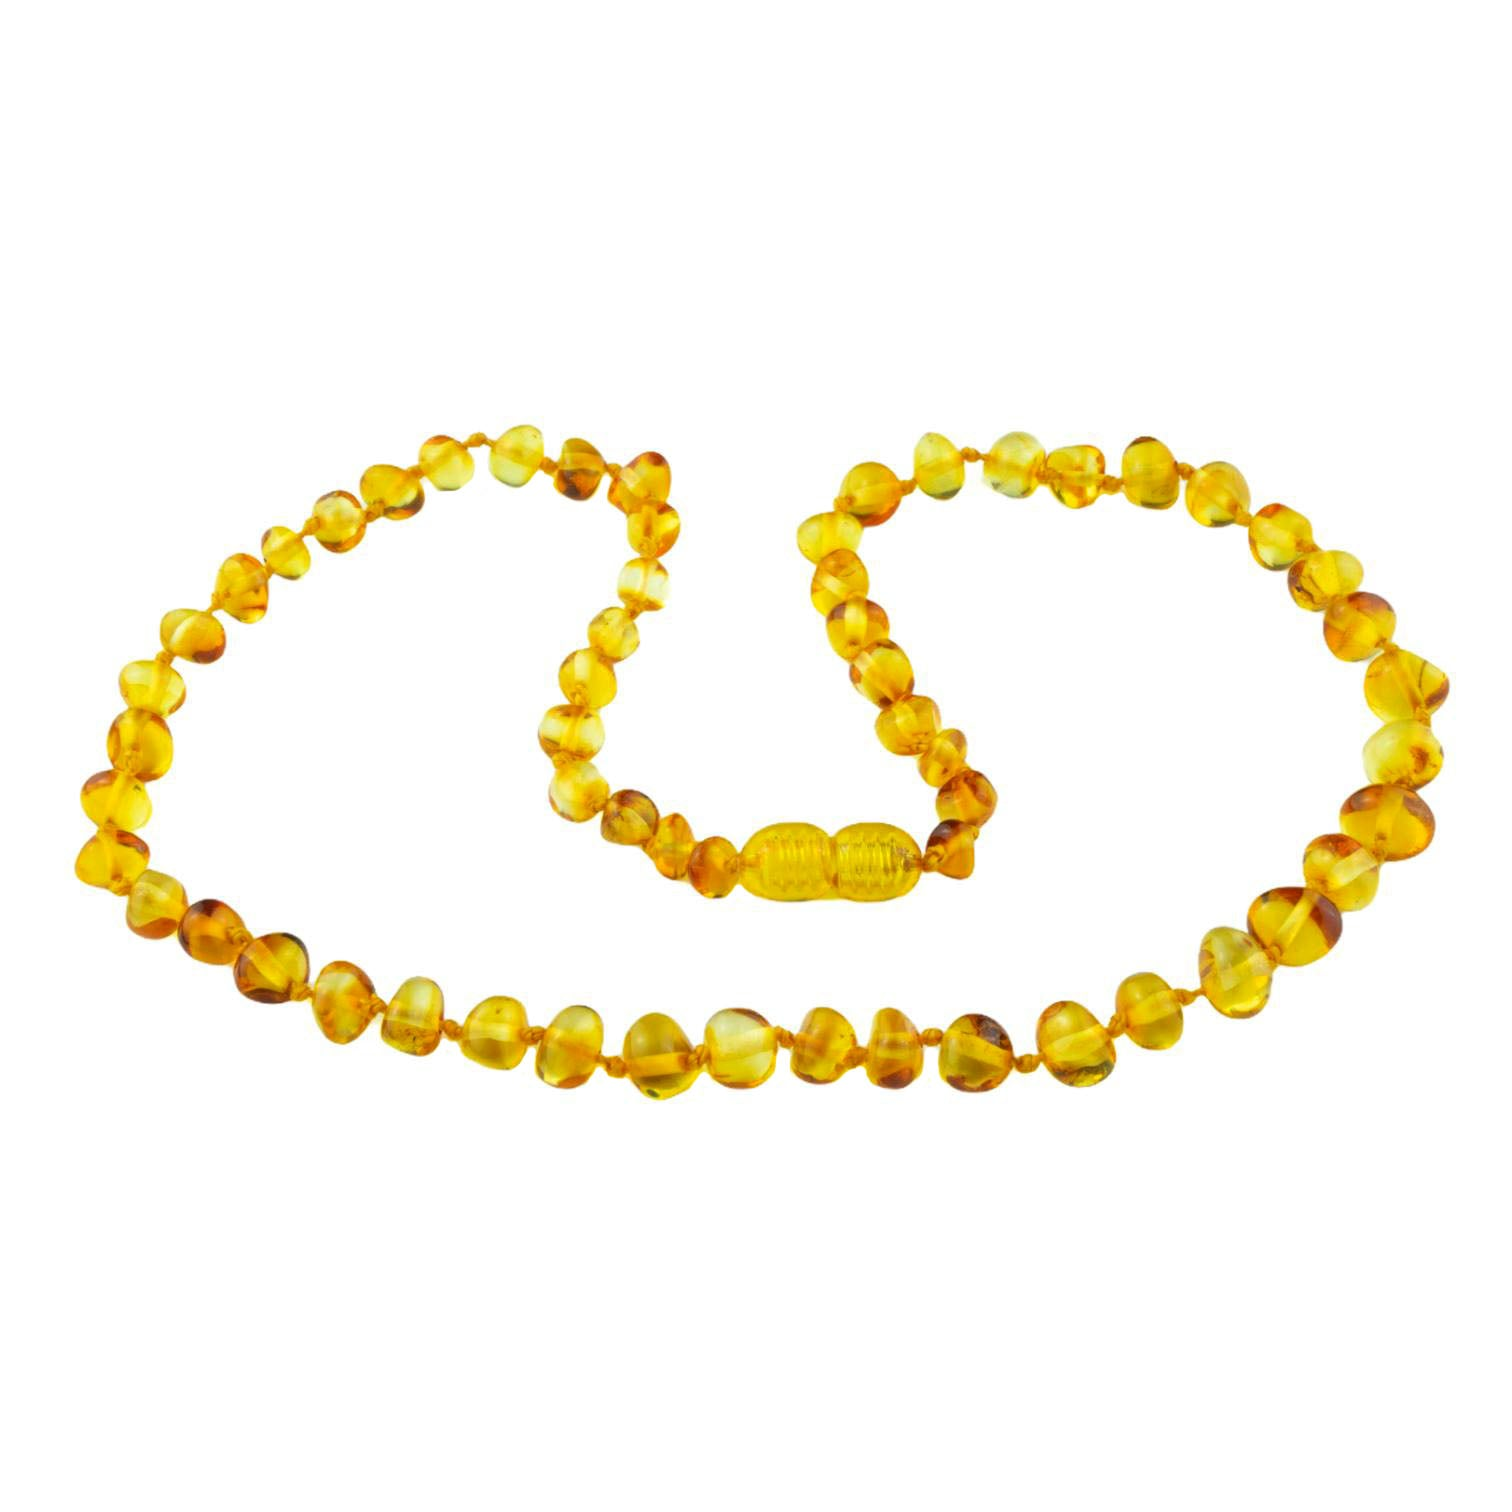 BALTIC AMBER Making Jewelry Choose From Variation #0054 Drop Down Menu